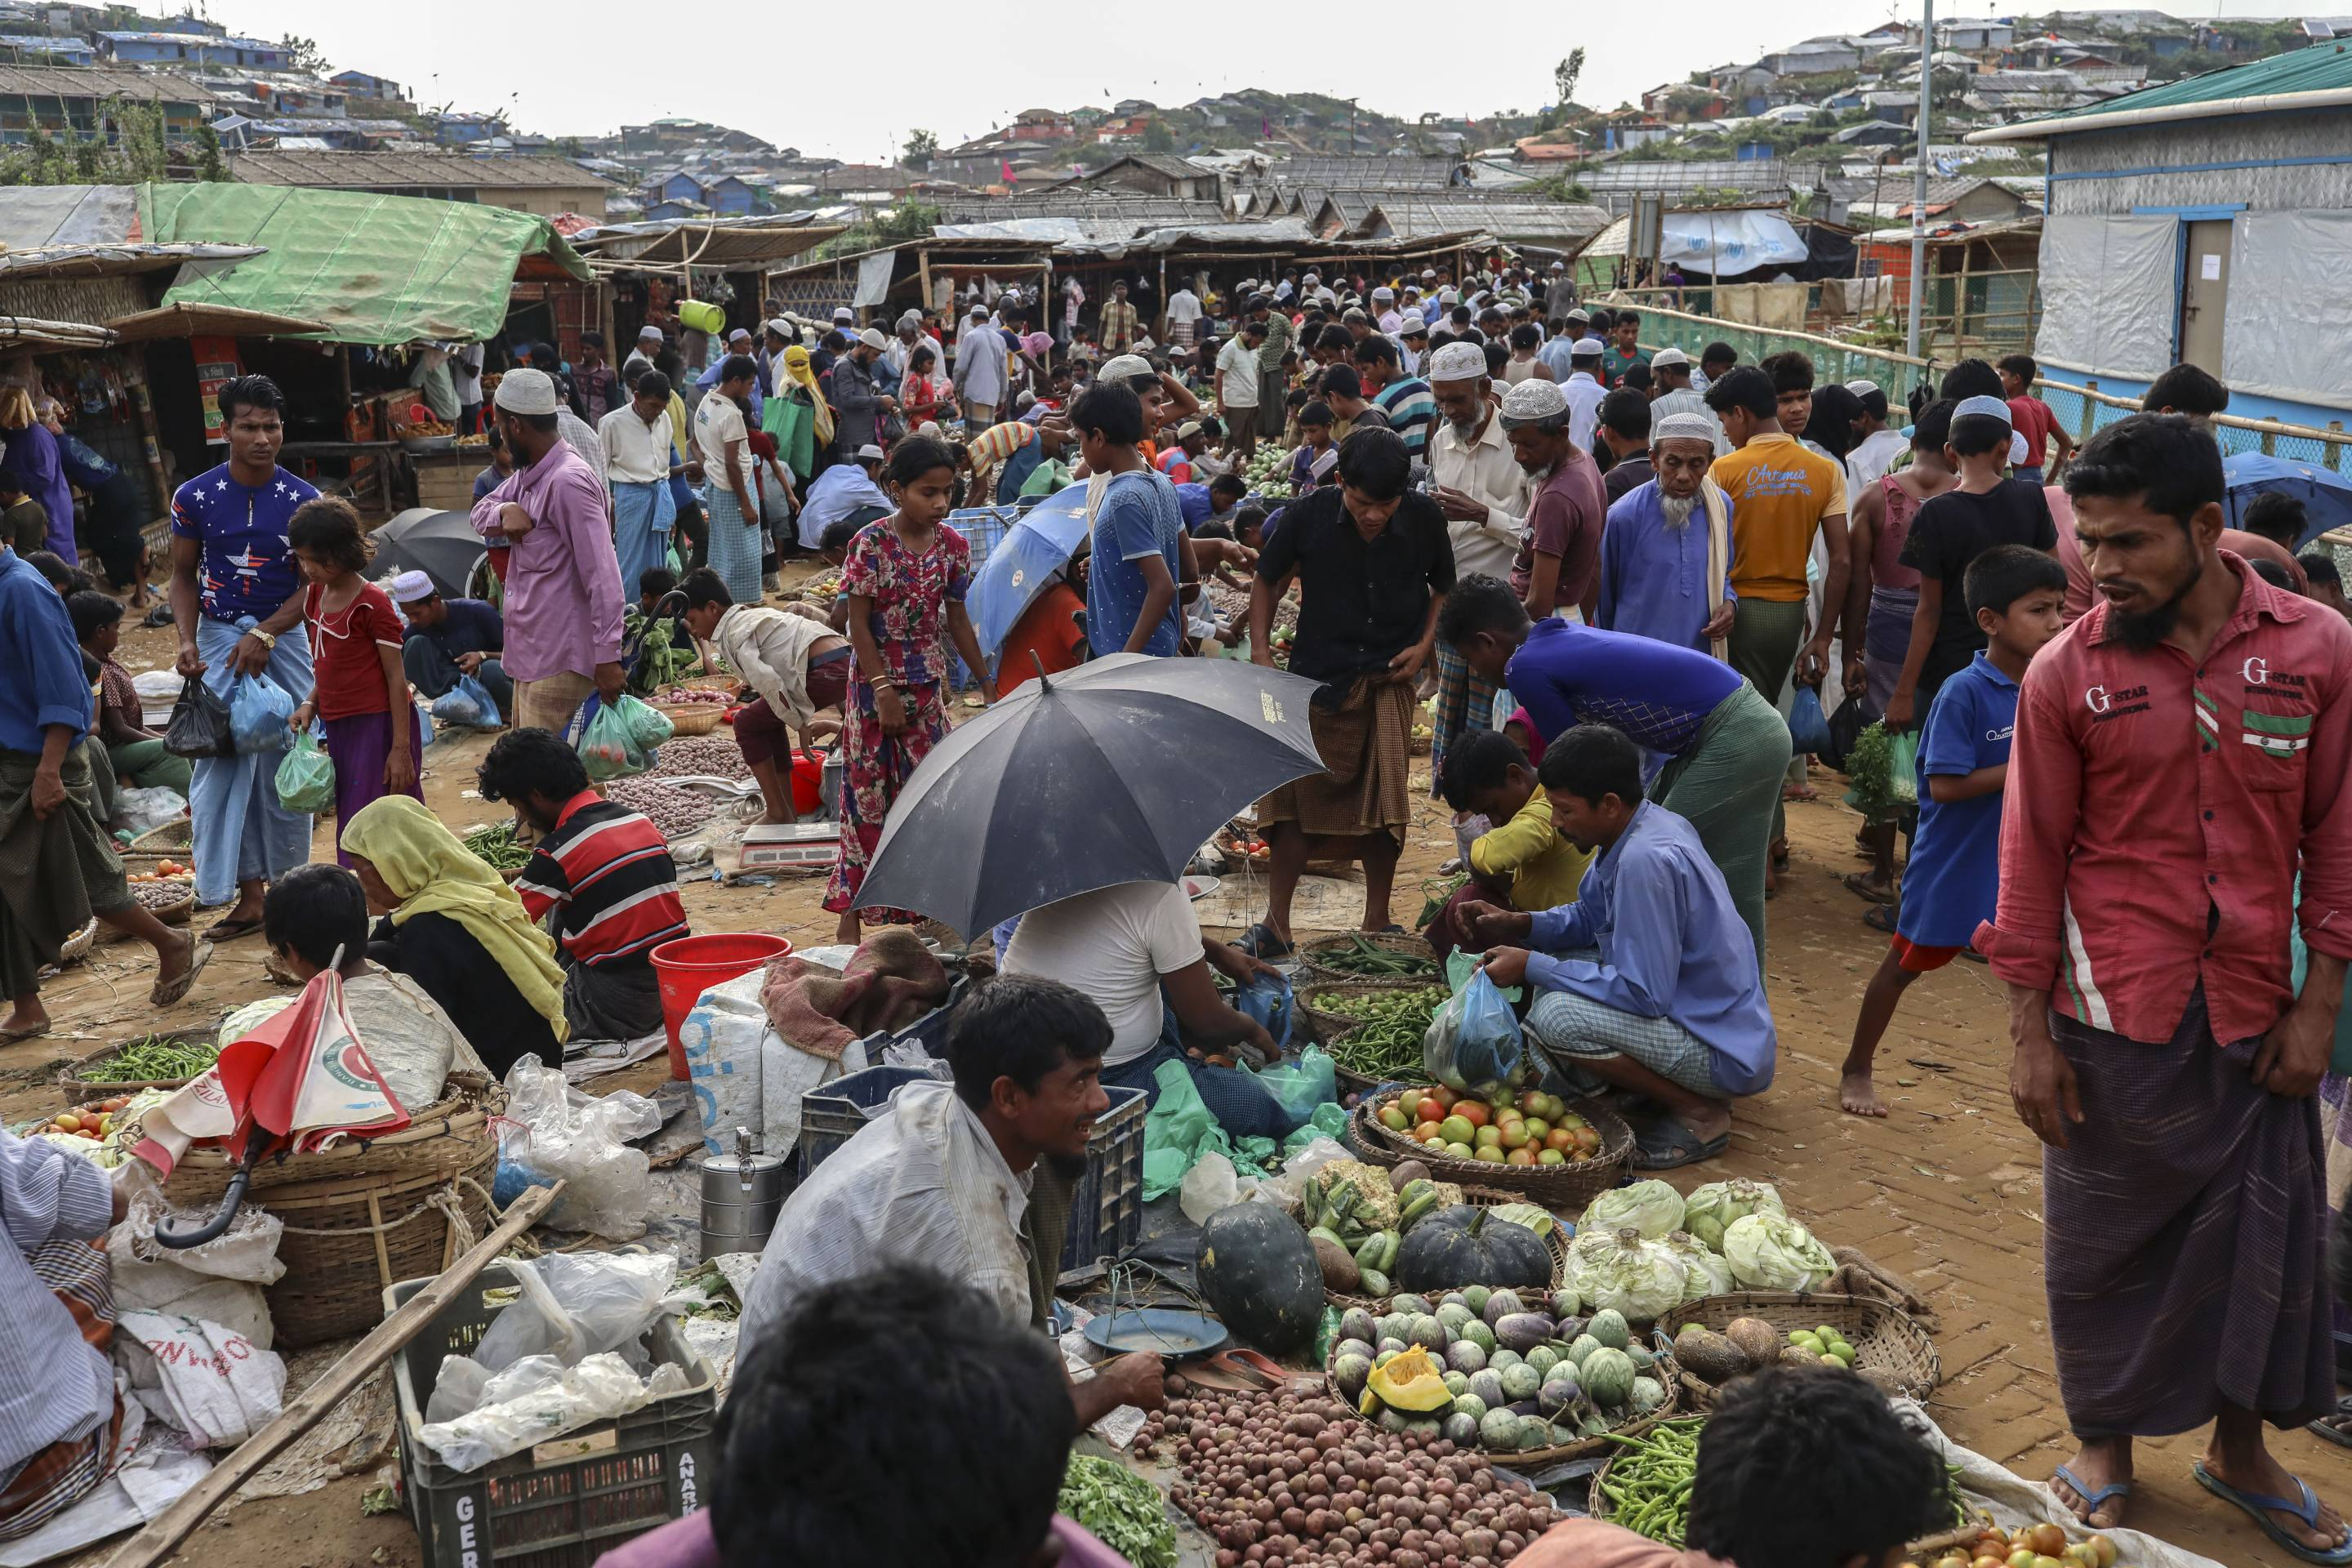 Rohingya people at the market in the Balukhali camp in Cox's Bazar, Bangladesh on March 07, 2019.